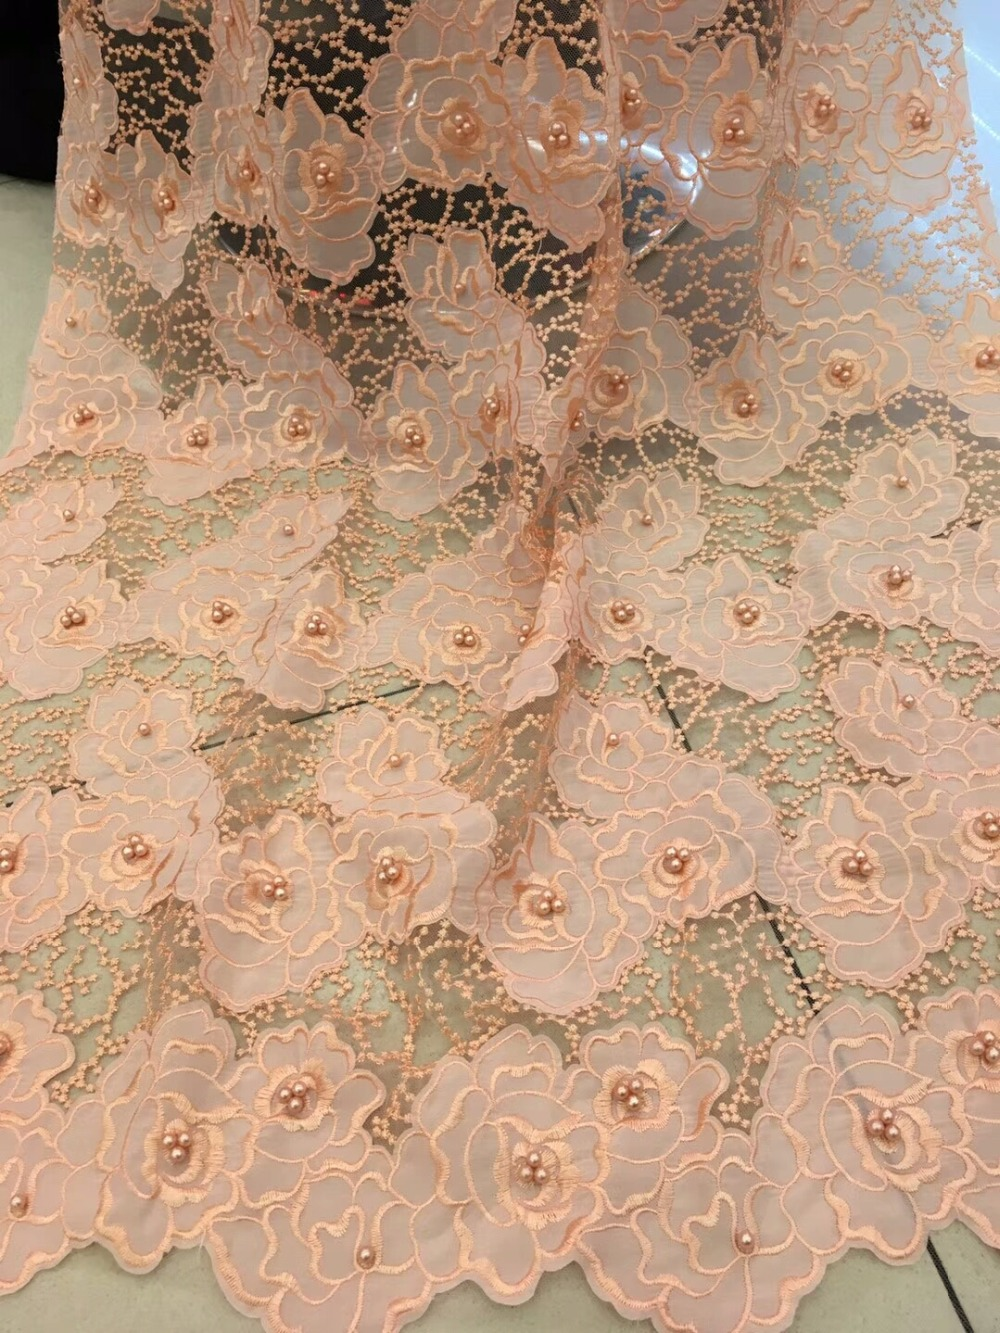 Newcoming french lace fabric with beads high quality african net tulle lace fabric in flowers pattern design   jiaa114Newcoming french lace fabric with beads high quality african net tulle lace fabric in flowers pattern design   jiaa114